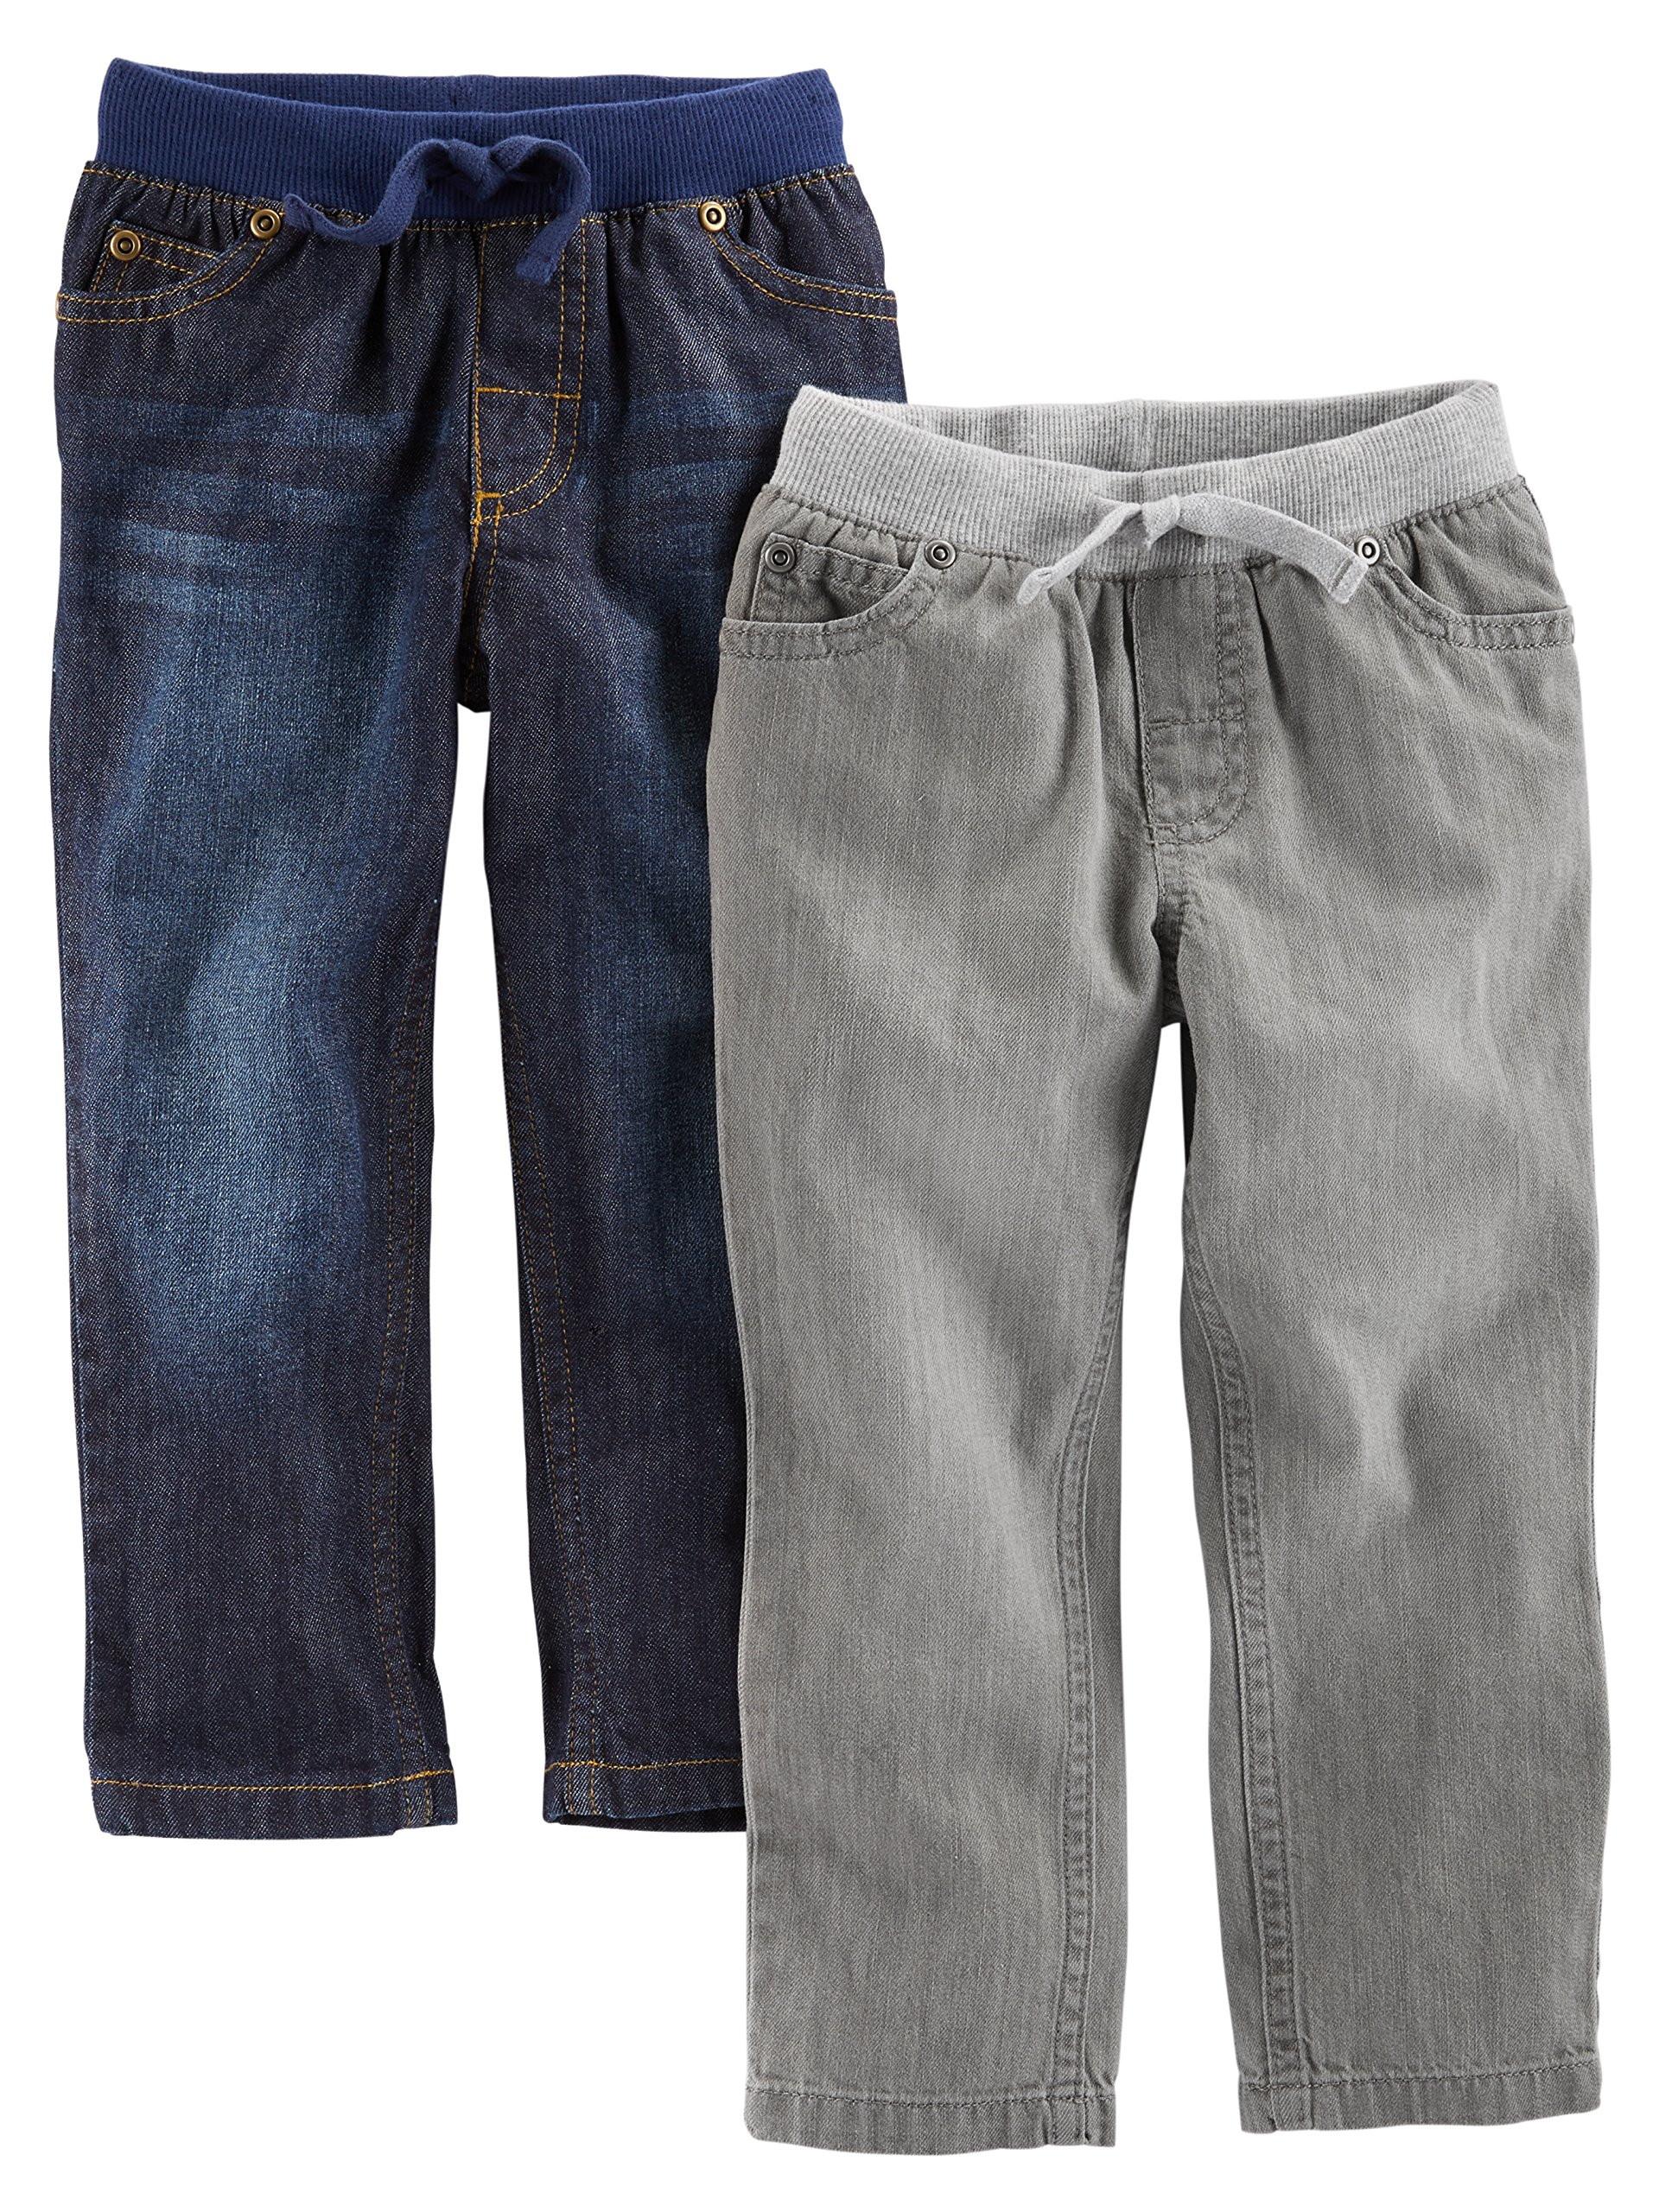 Simple Joys by Carter's Baby Boys' Toddler 2-Pack Pull on Denim Pant, Gray Denim, Blue Denim, 3T by Simple Joys by Carter's